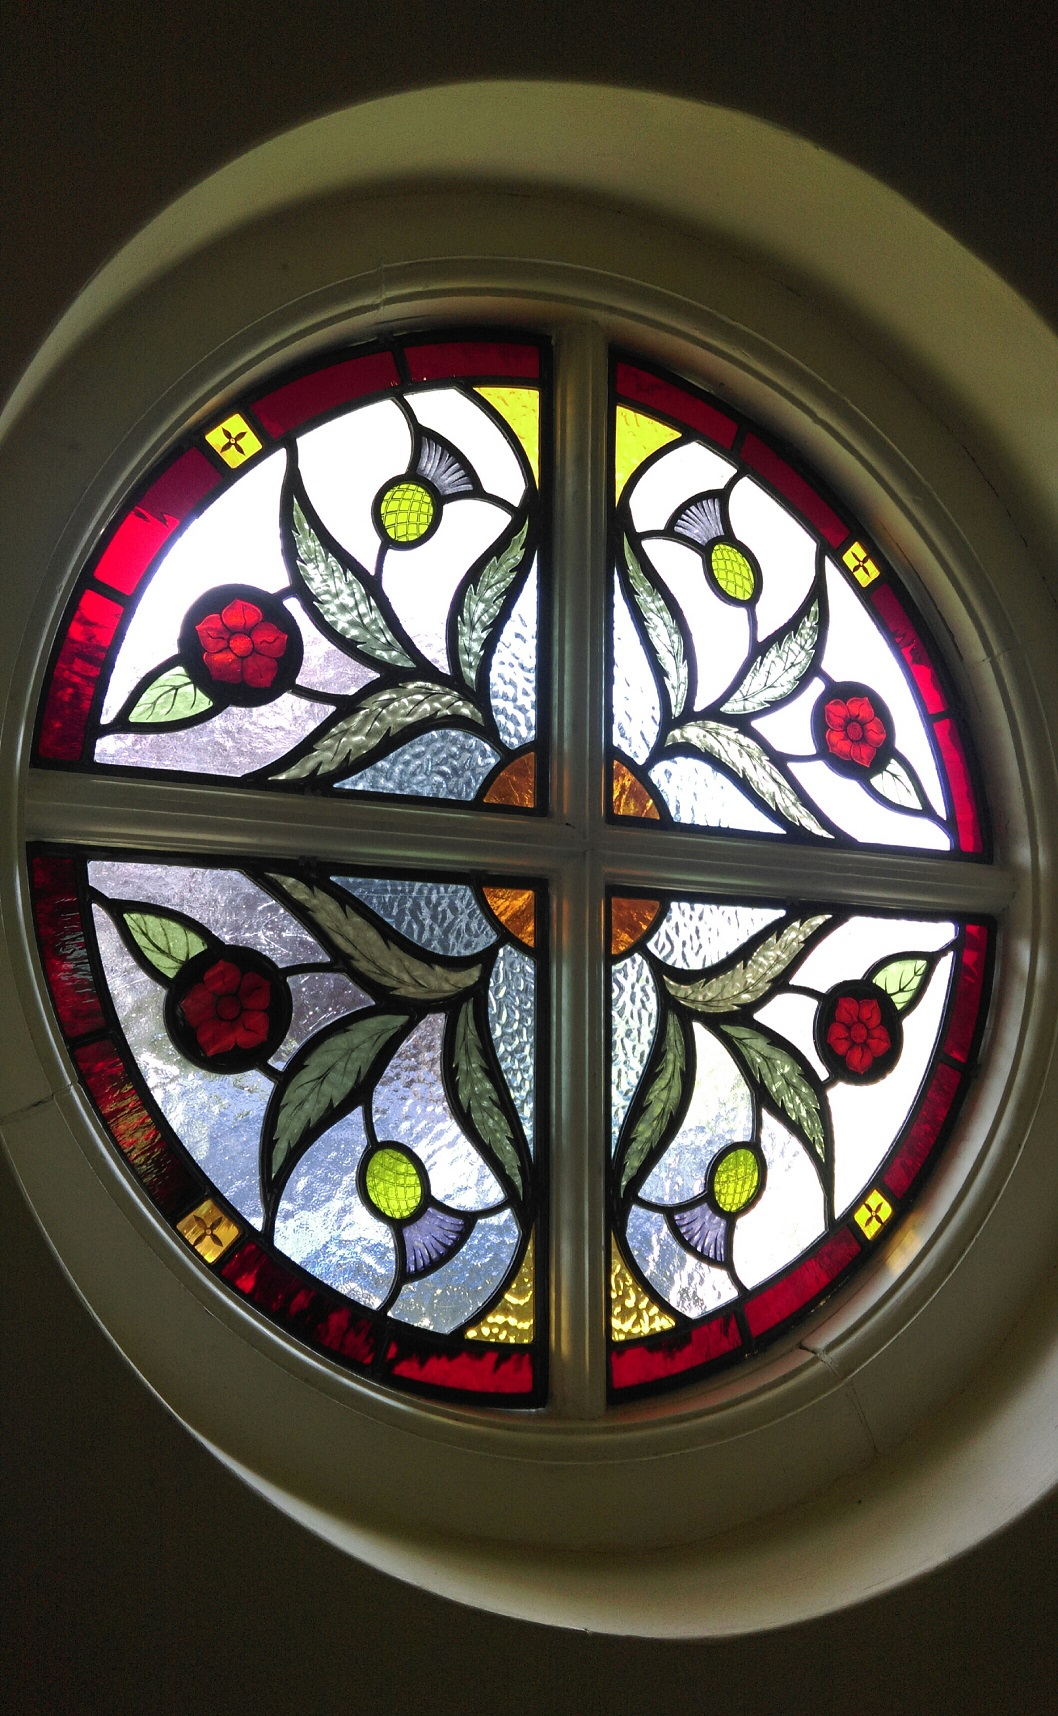 Round window featuring rose and thistle design for house in Chertsey, Surrey.